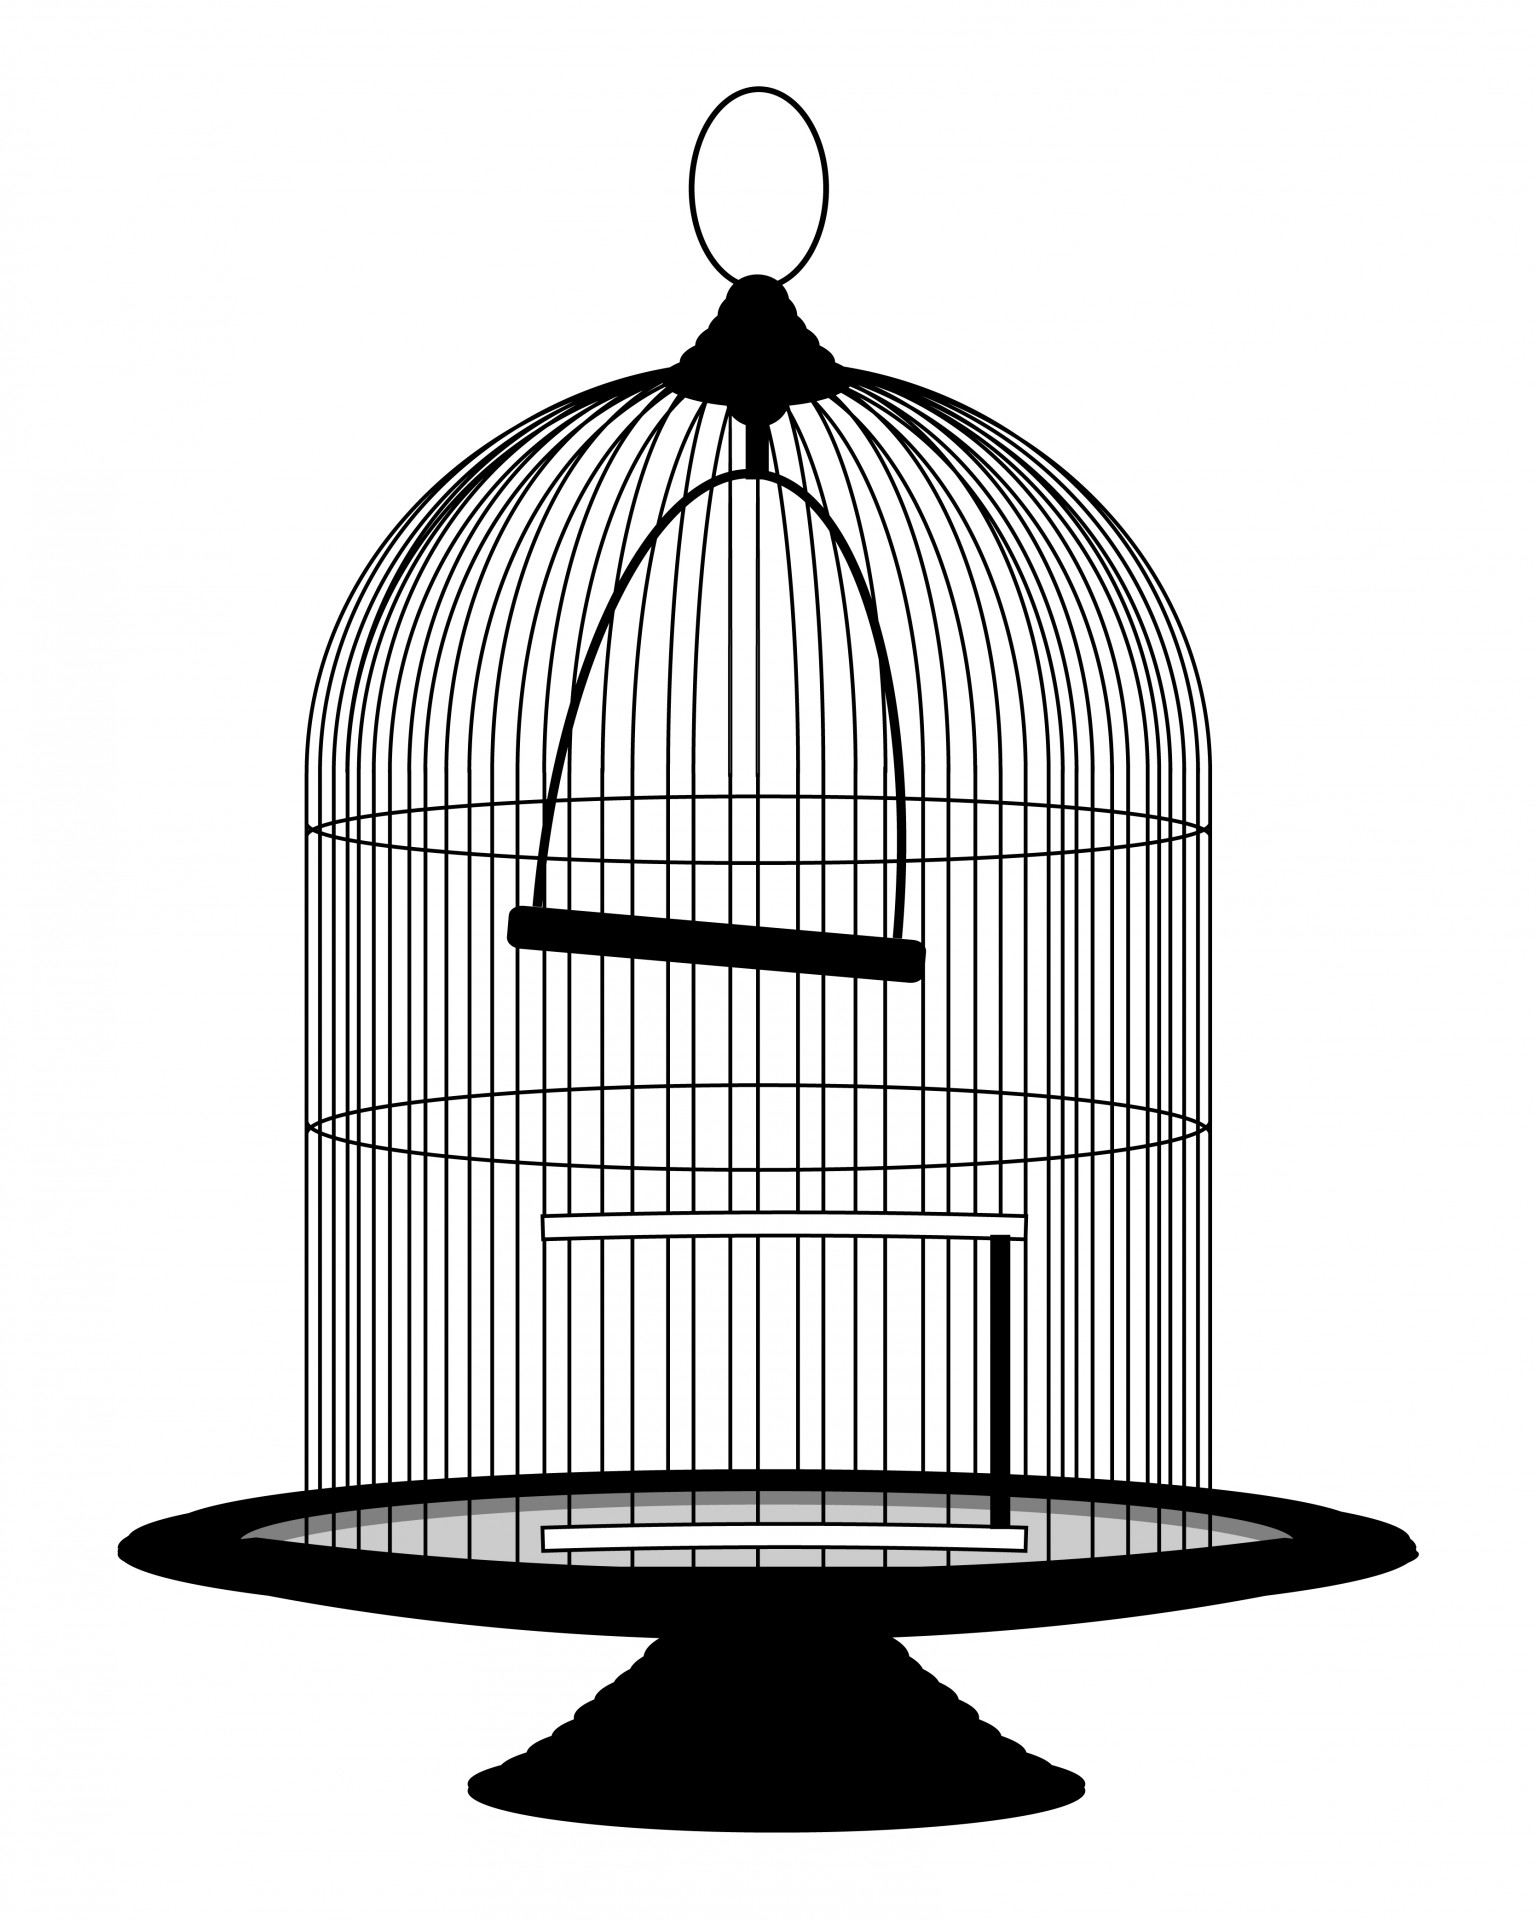 Cage clipart victorian. Vintage birdcage free stock